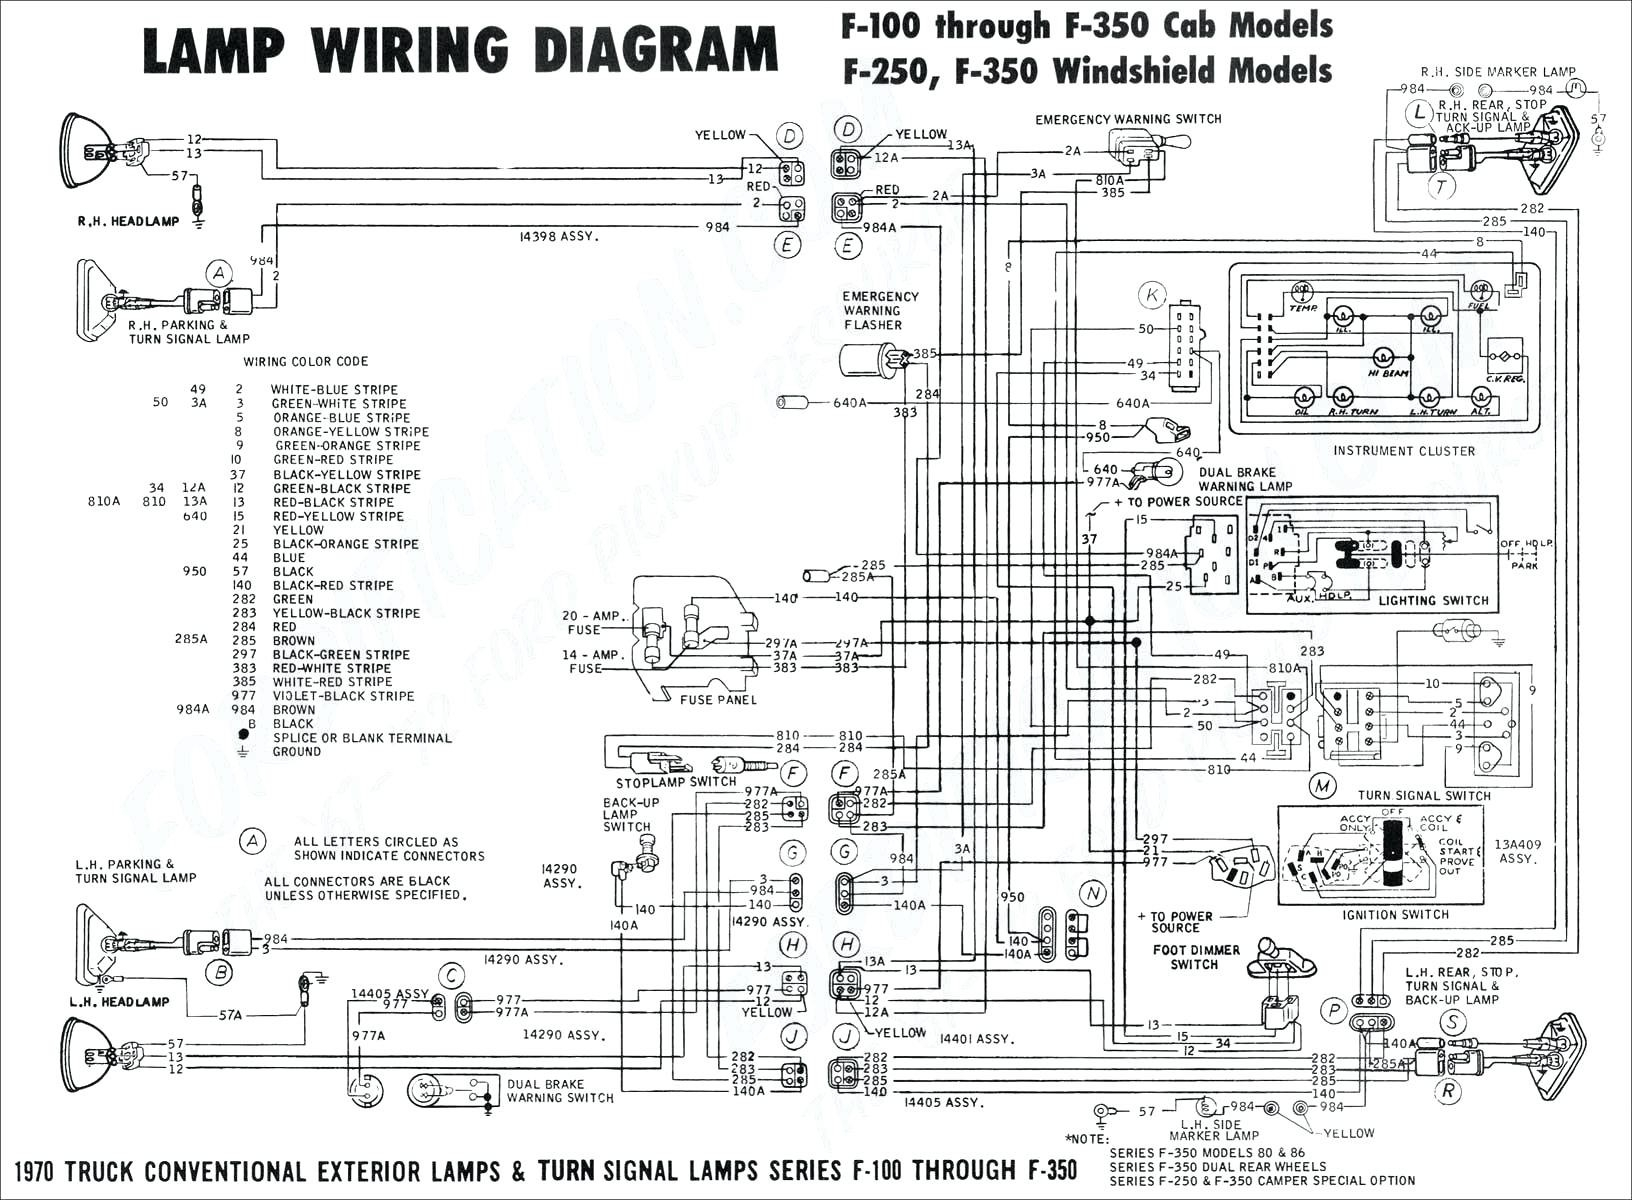 1997 Ford F150 Spark Plug Wiring Diagram Free Tail Light Stop Turn Beautiful 1979